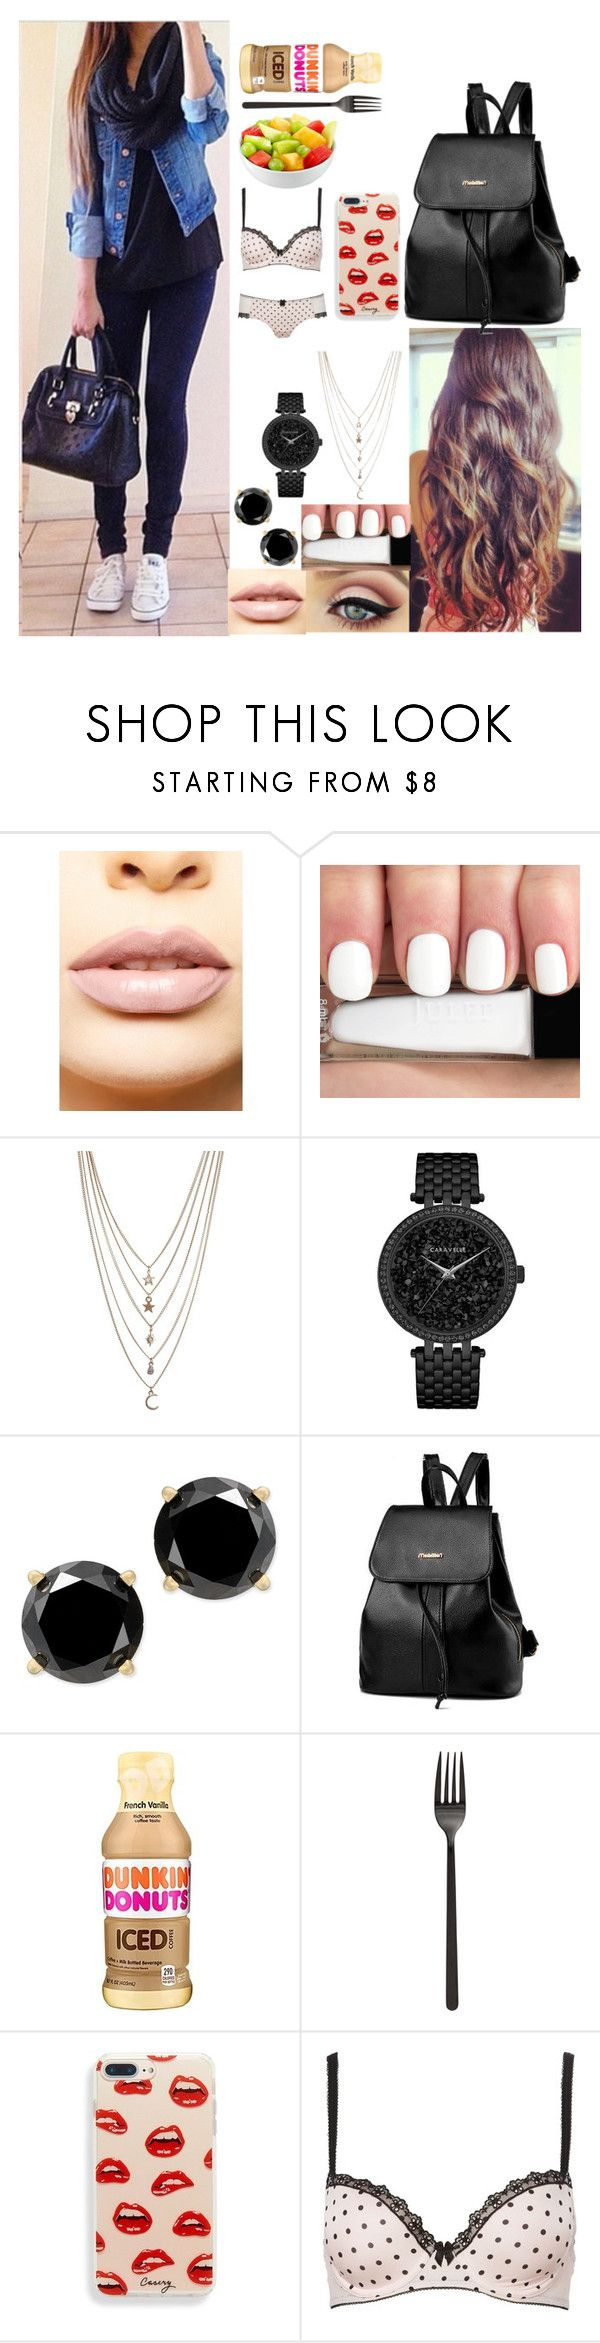 """""""Untitled #2"""" by spideyhiraldo ❤ liked on Polyvore featuring LASplash, Ettika, Caravelle by Bulova, WithChic and b.tempt'd by Wacoal"""